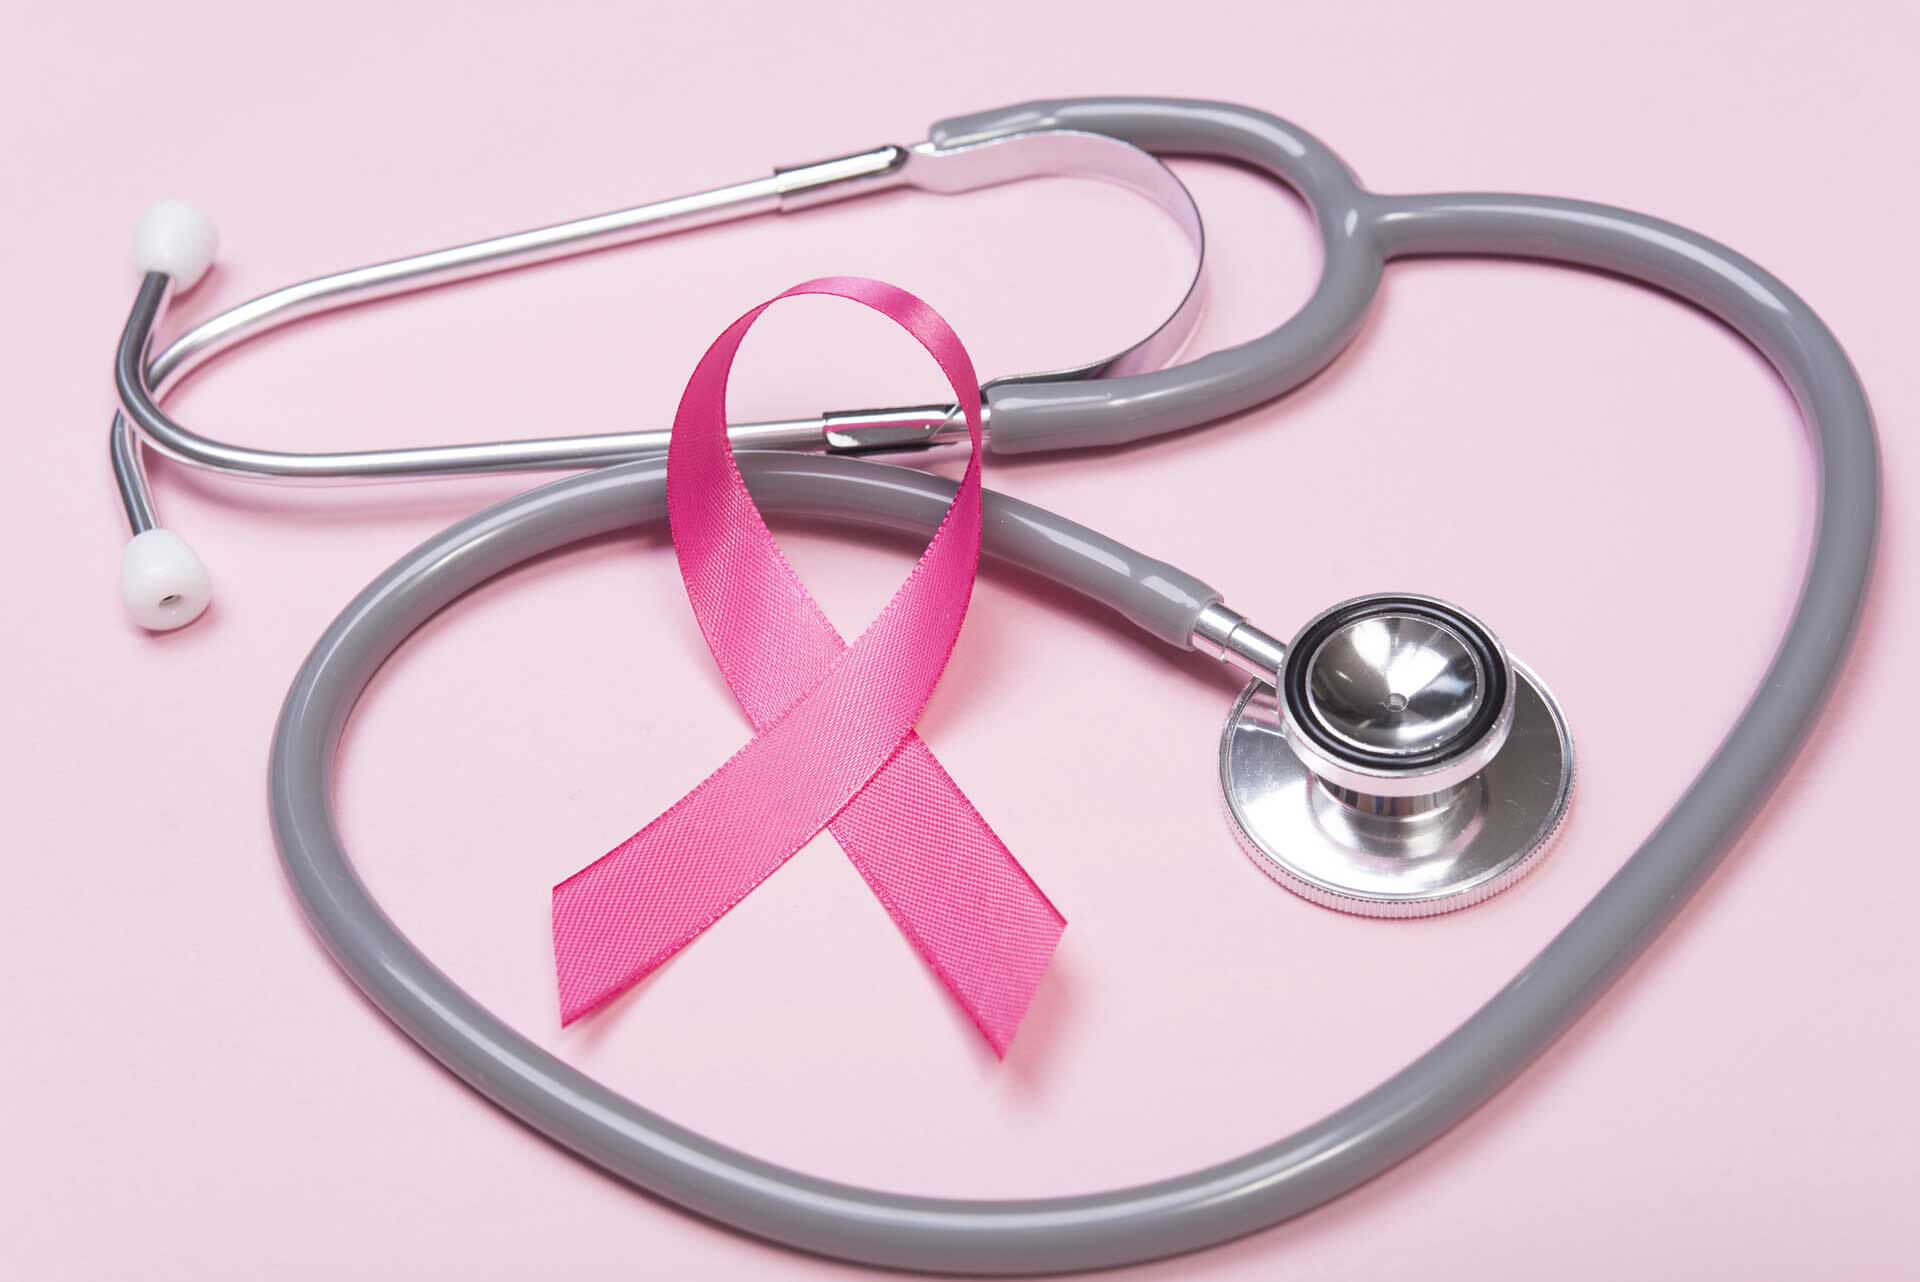 What You May Not Know About Breast Cancer Patients